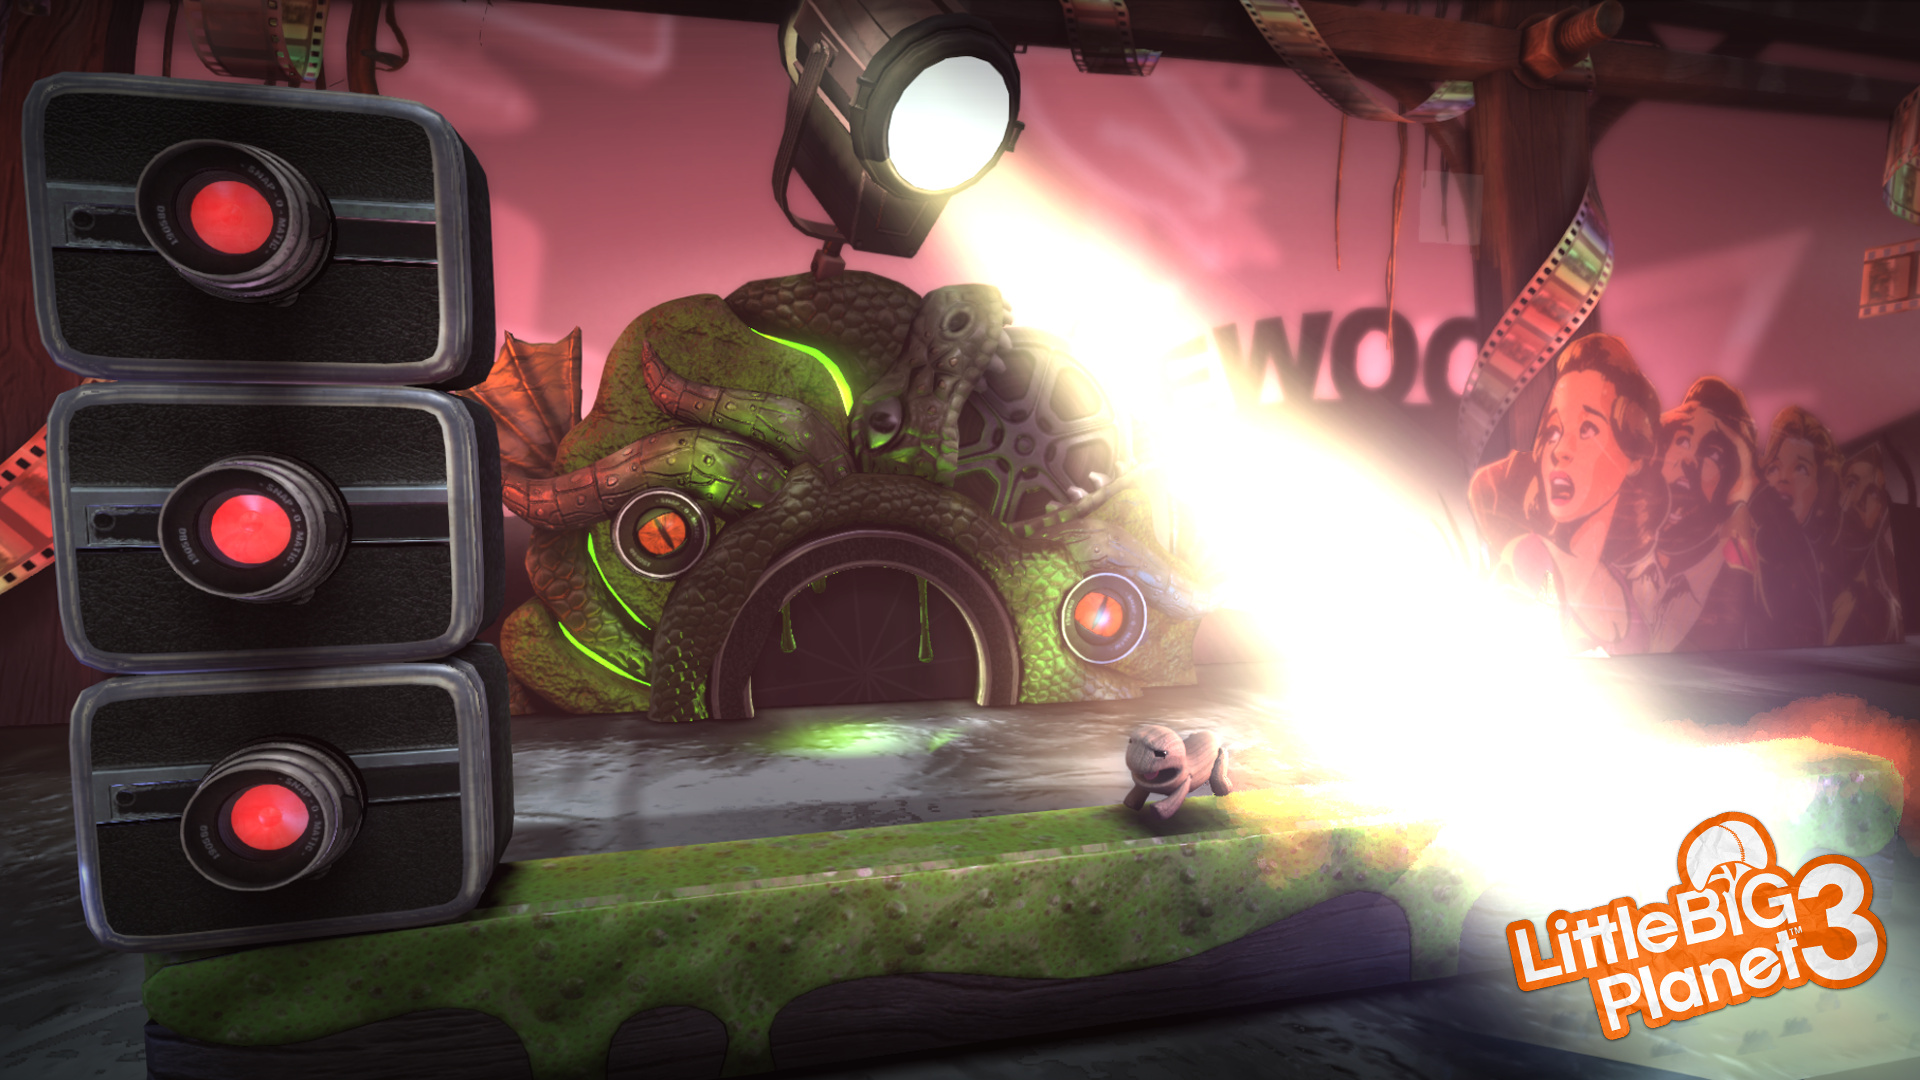 Littlebigplanet 3 Ps3 Playstation 3 Game Profile